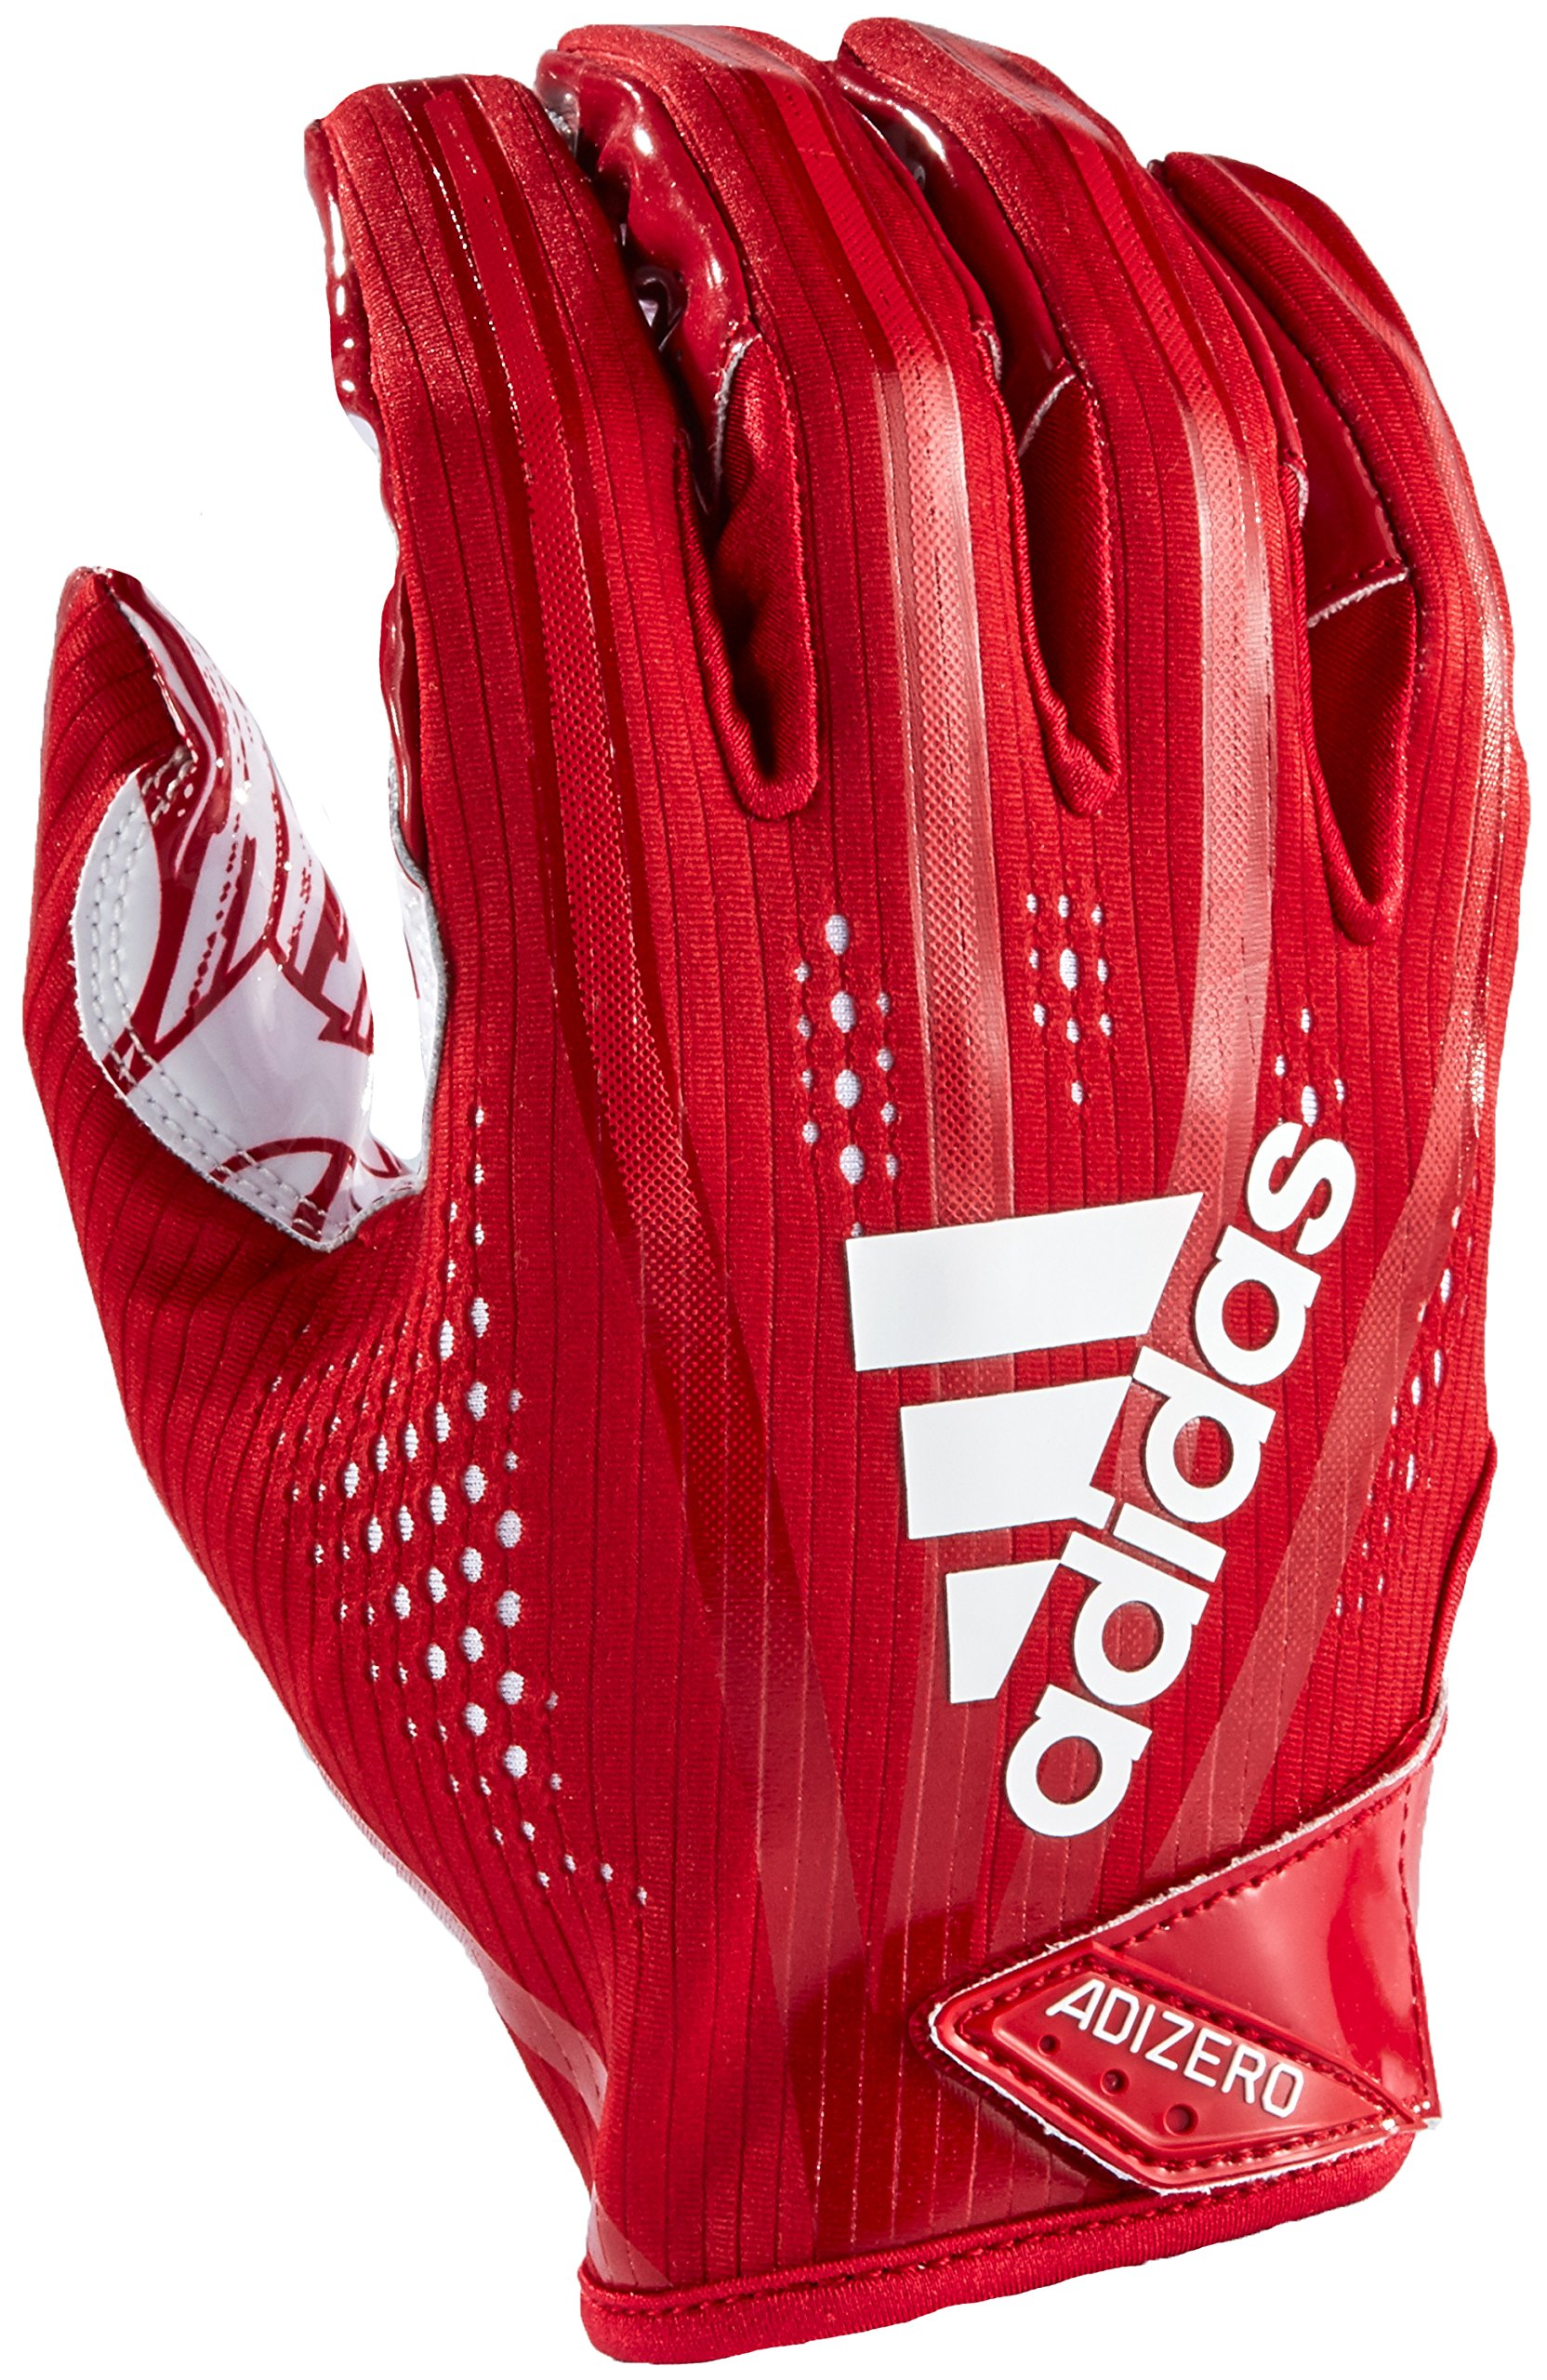 adidas AF1000 Adizero 7.0 Receiver's Gloves, Red, Medium by adidas (Image #1)